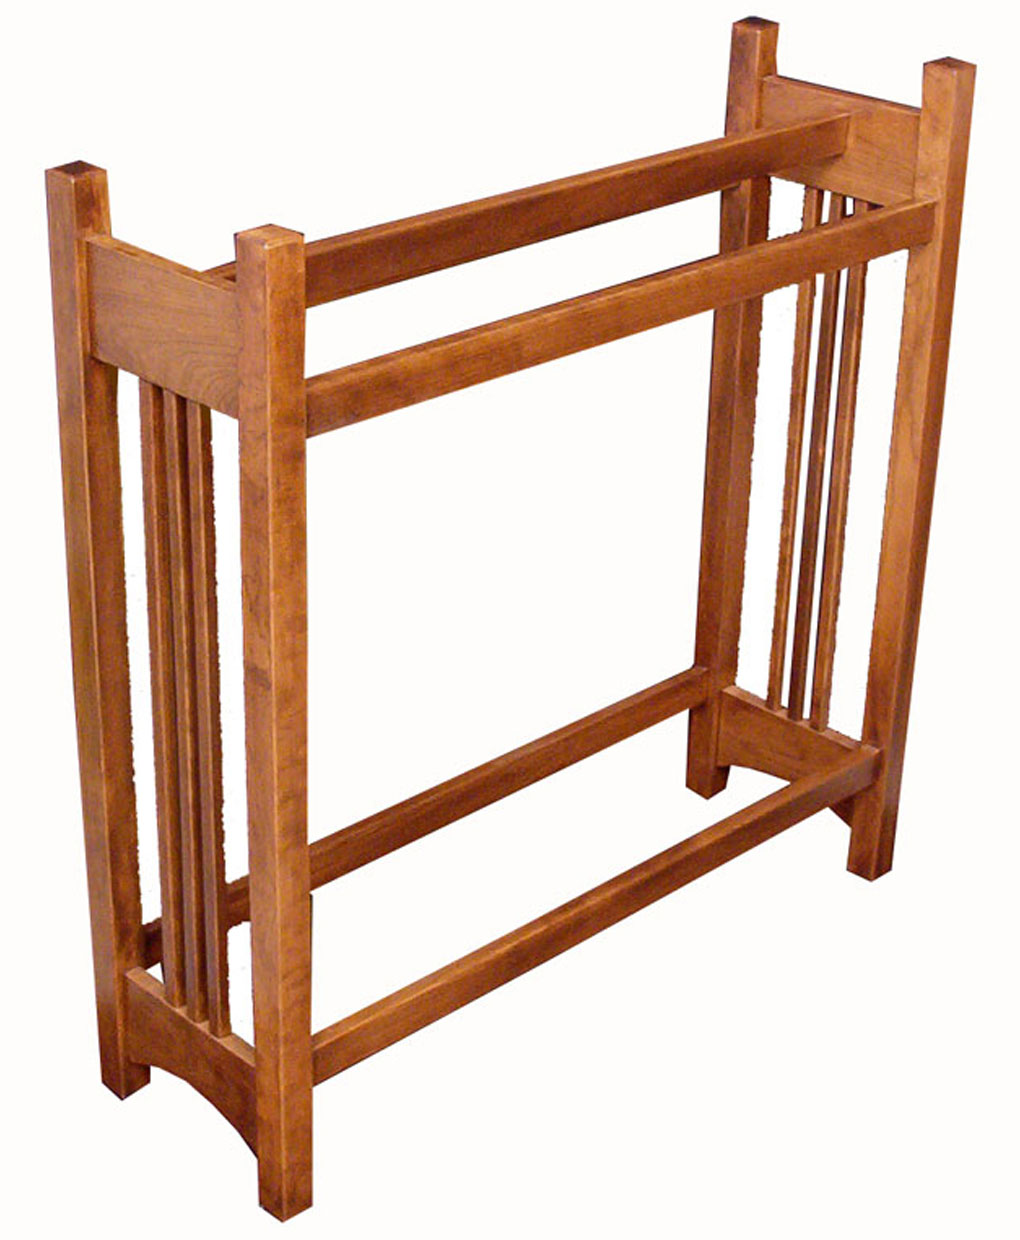 Mission Quilt Rack - Cherry